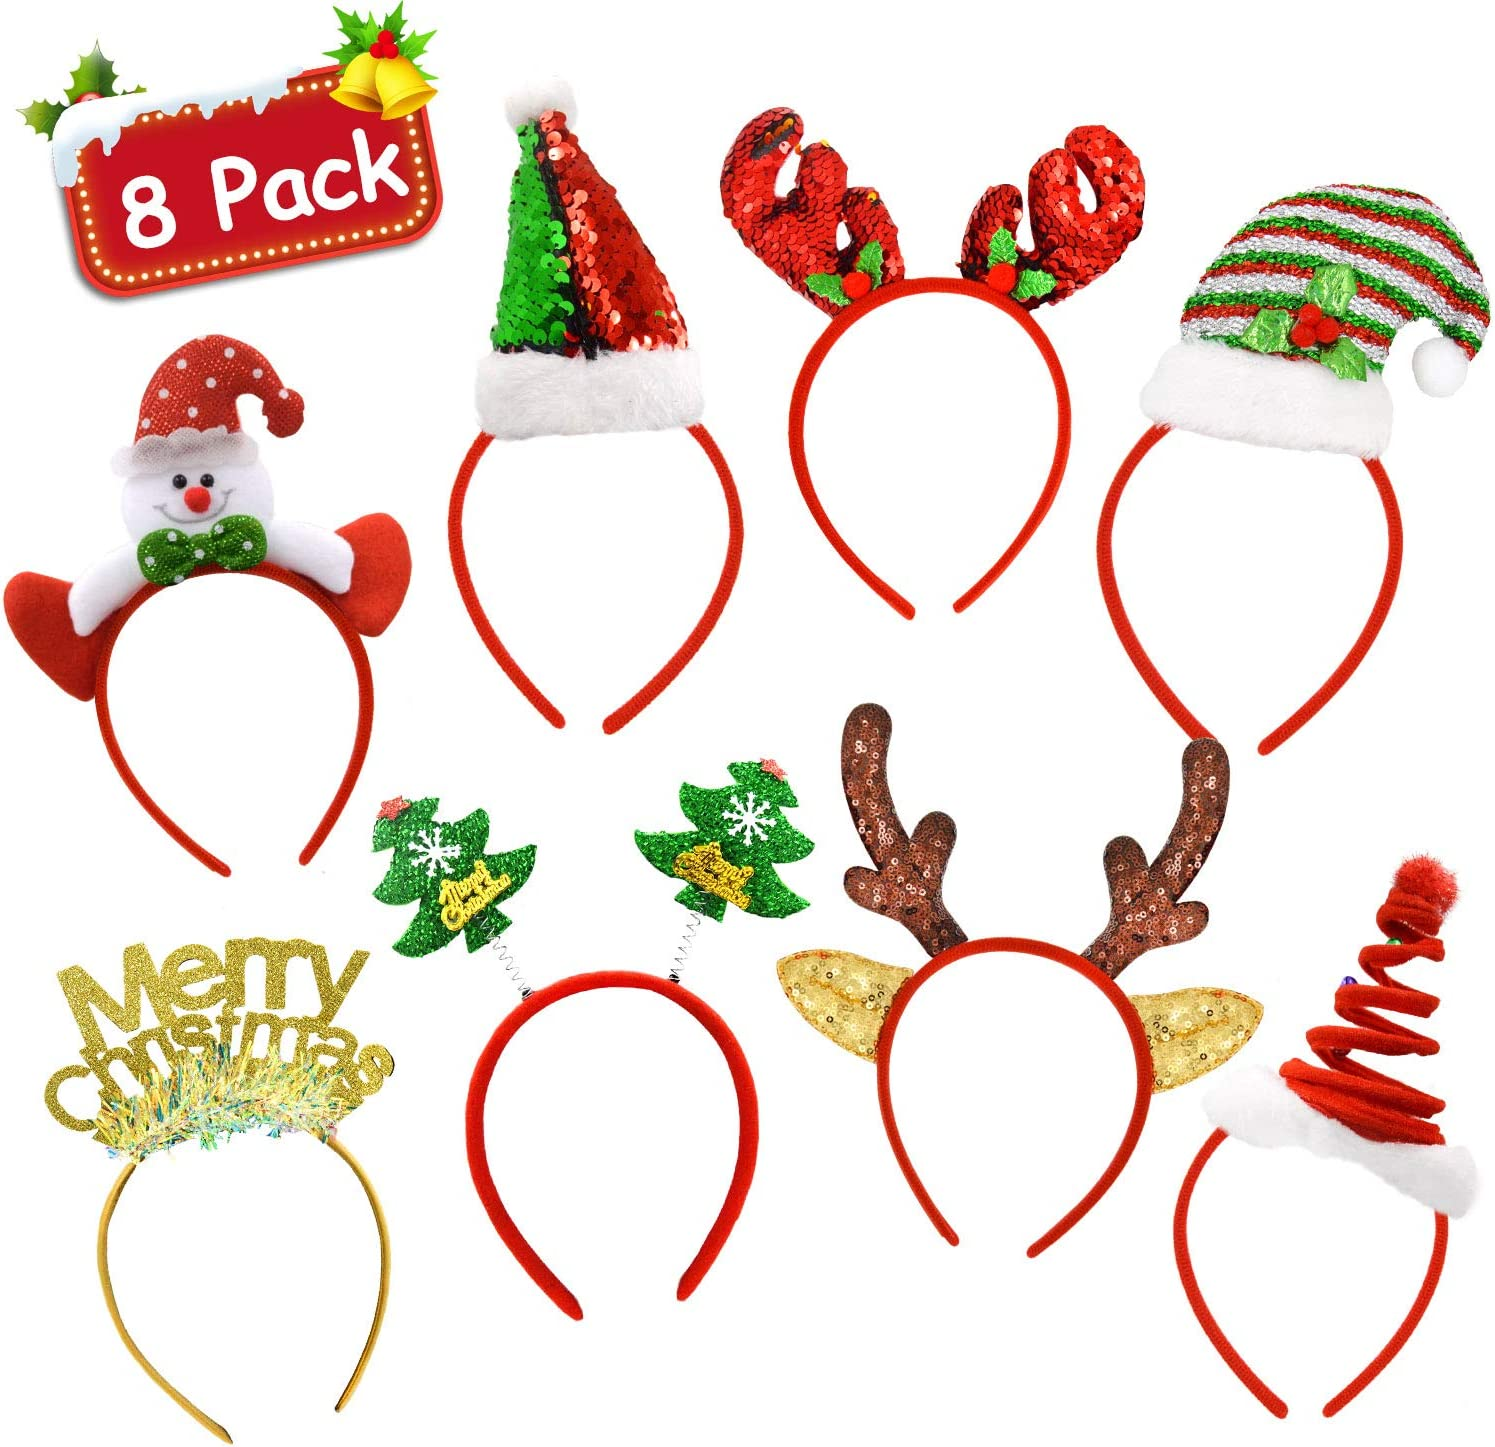 Christmas Party Favors - Pack of 8 Christmas Holiday Party Fancy Glitter Headband Hats Reindeer Antlers Snowman Xmas Tree Photo Prop Booth